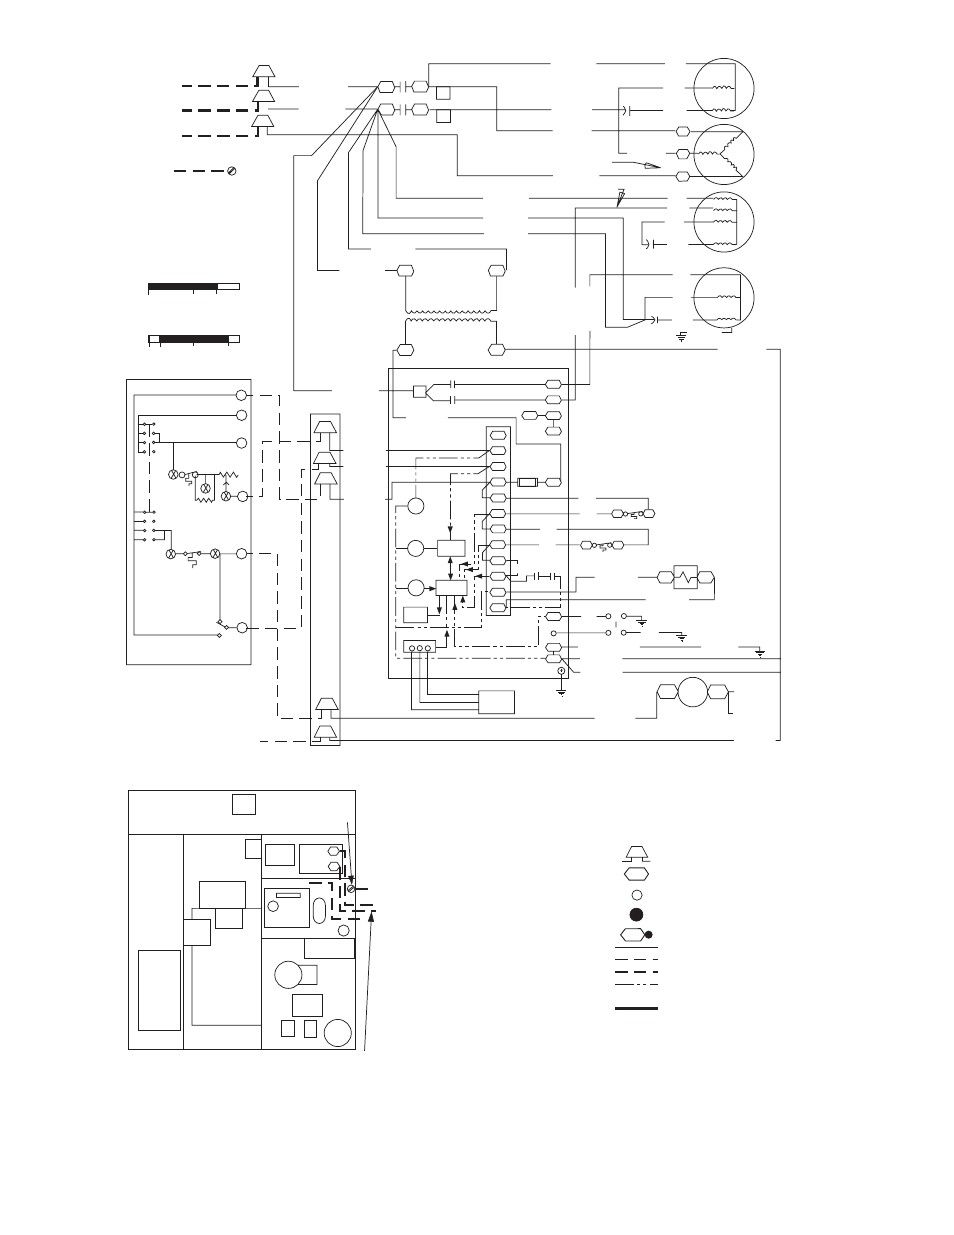 Bryant 582a User Manual Page 18 36 Blower Motor Wiring